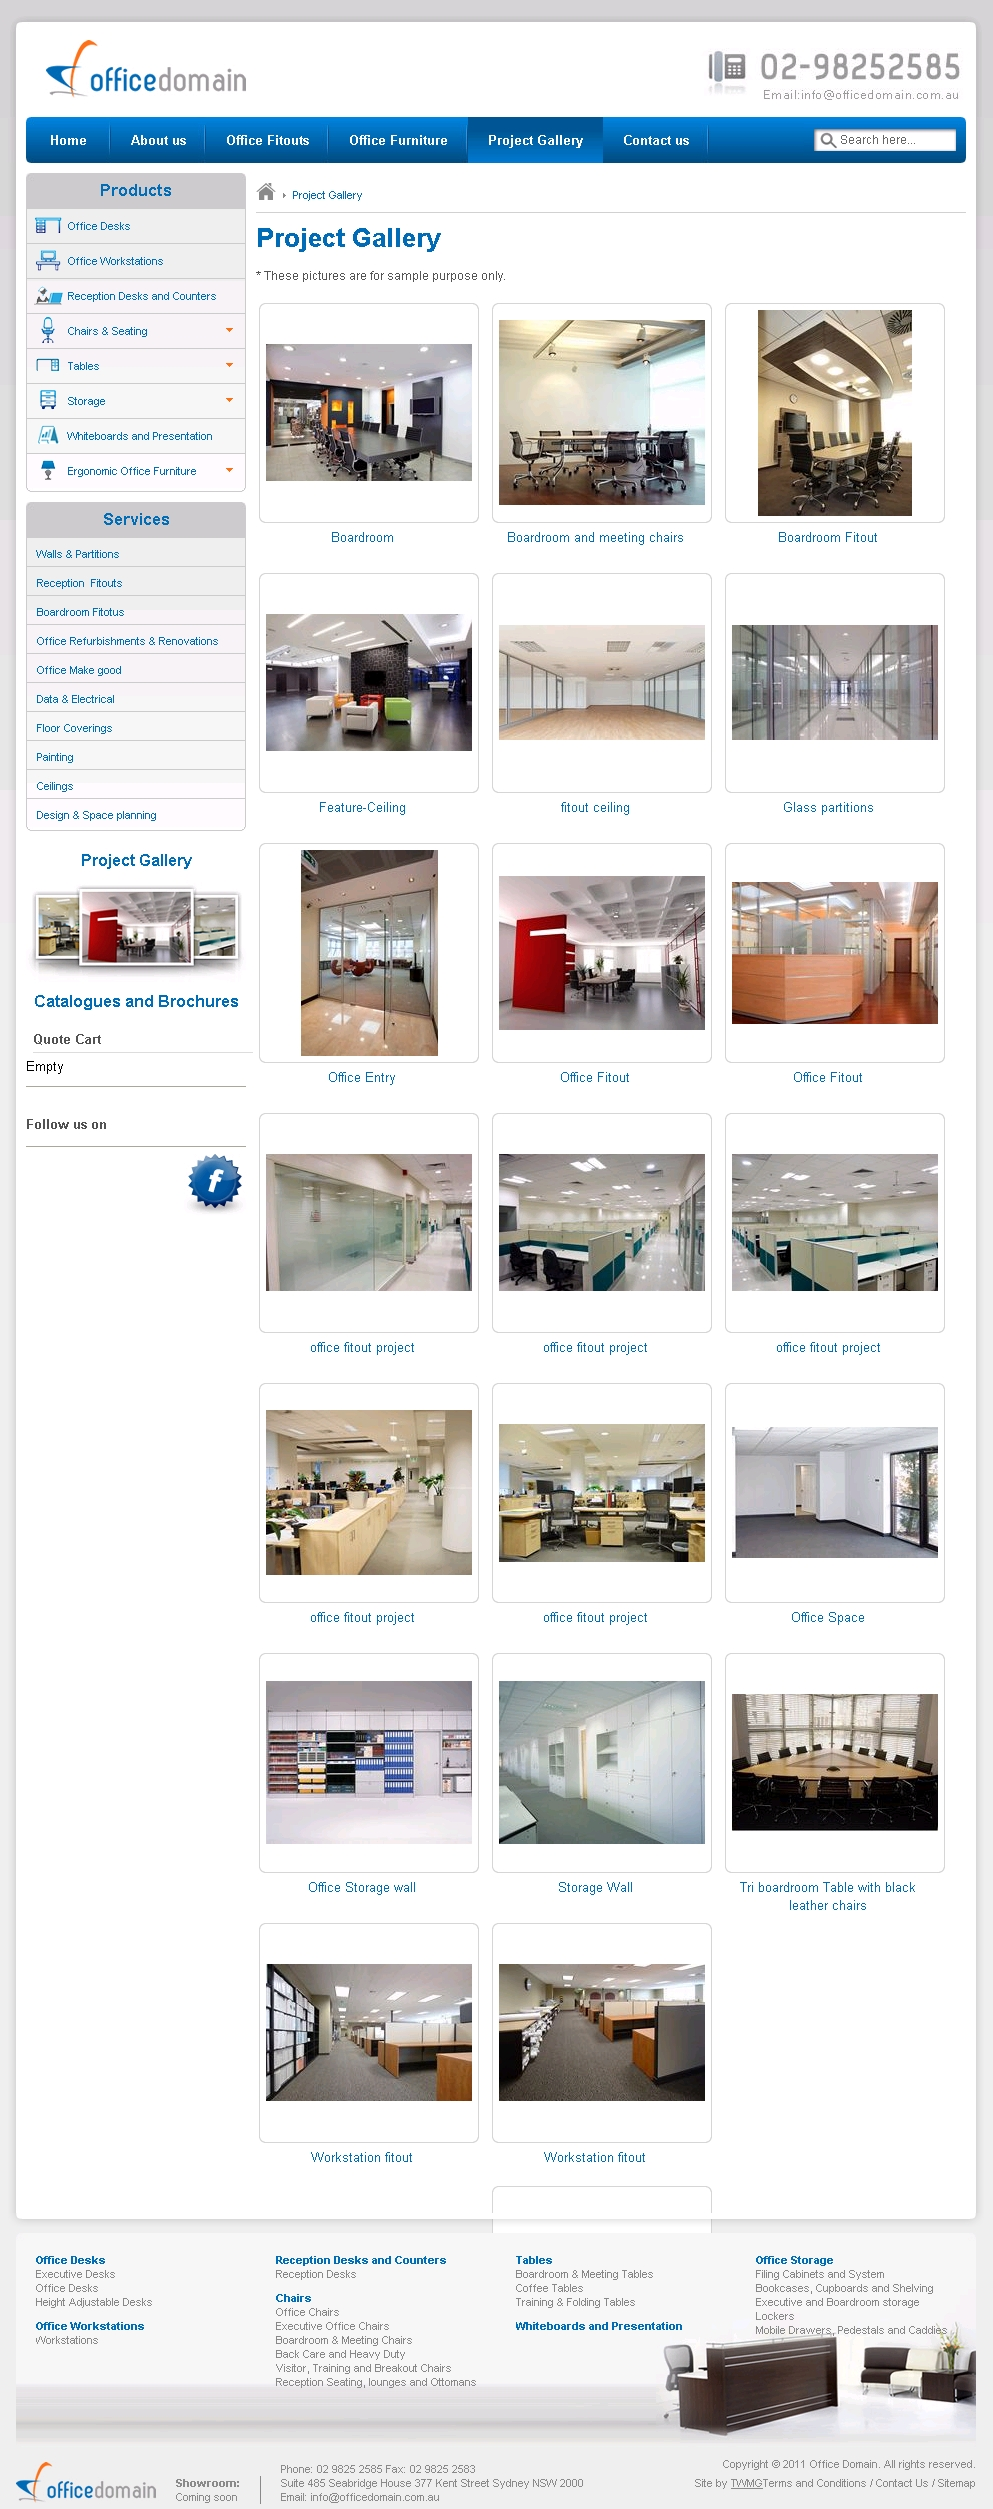 Office Domain Project Gallery